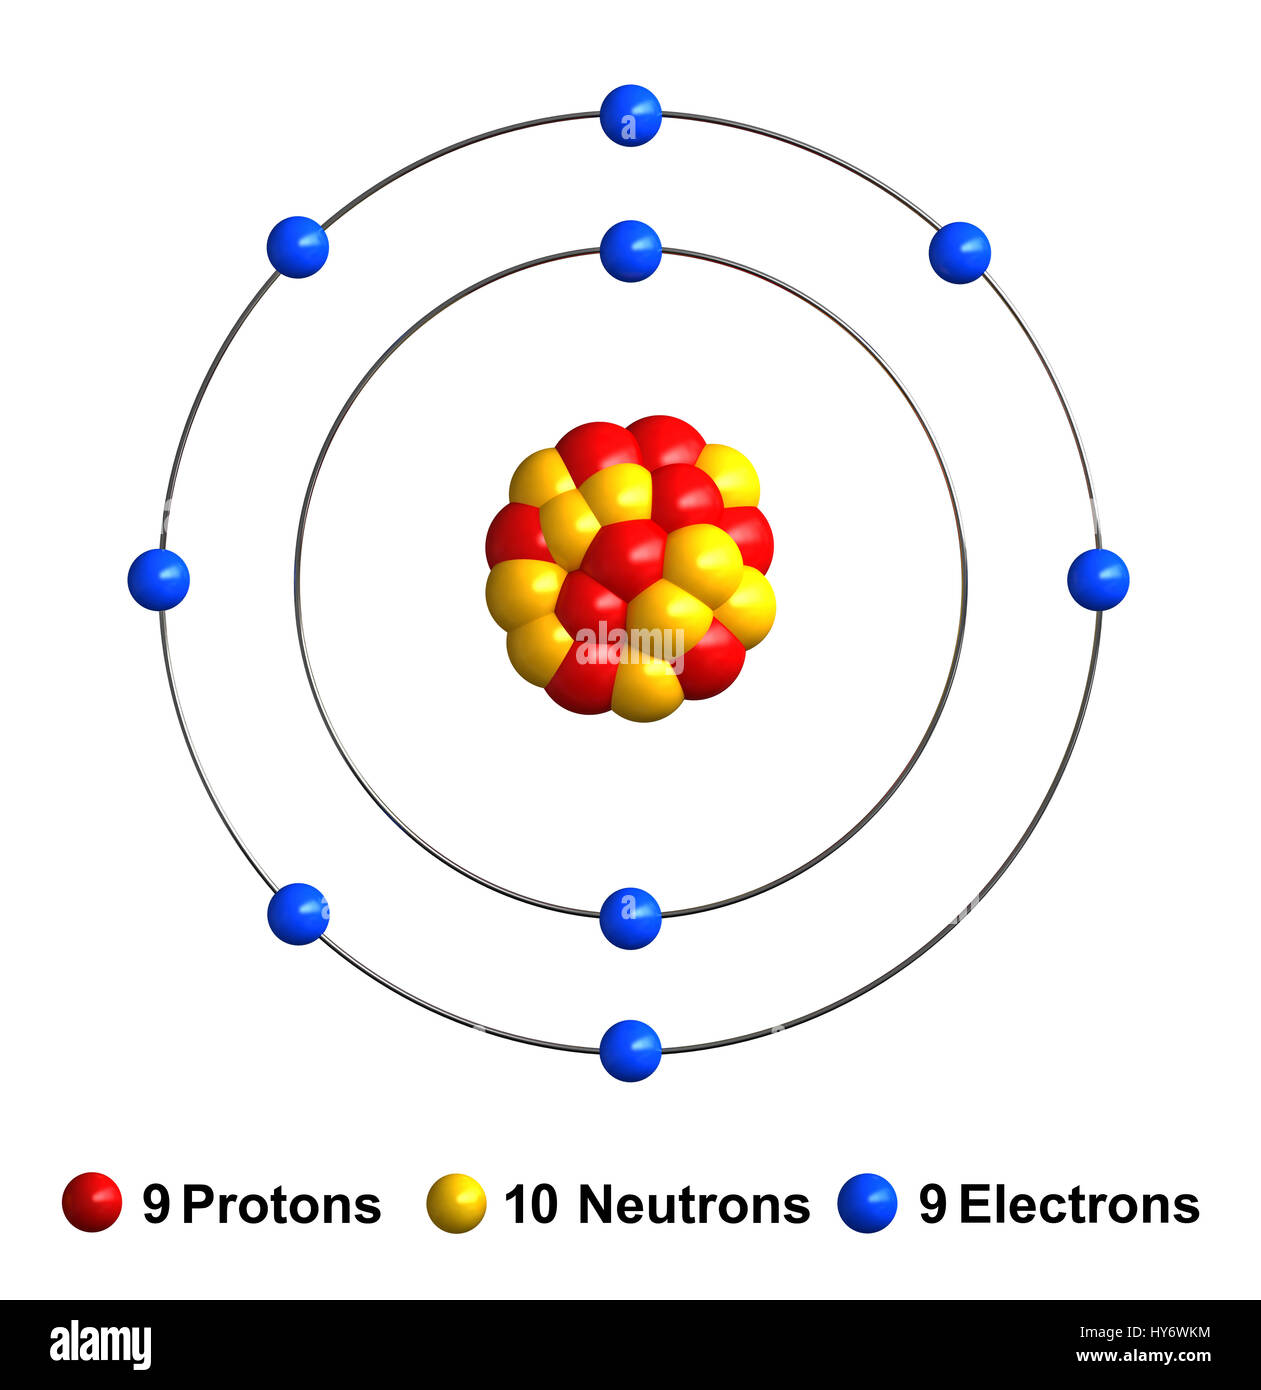 atomic symbol diagram do it yourself house wiring 3d render of atom structure fluorine isolated over